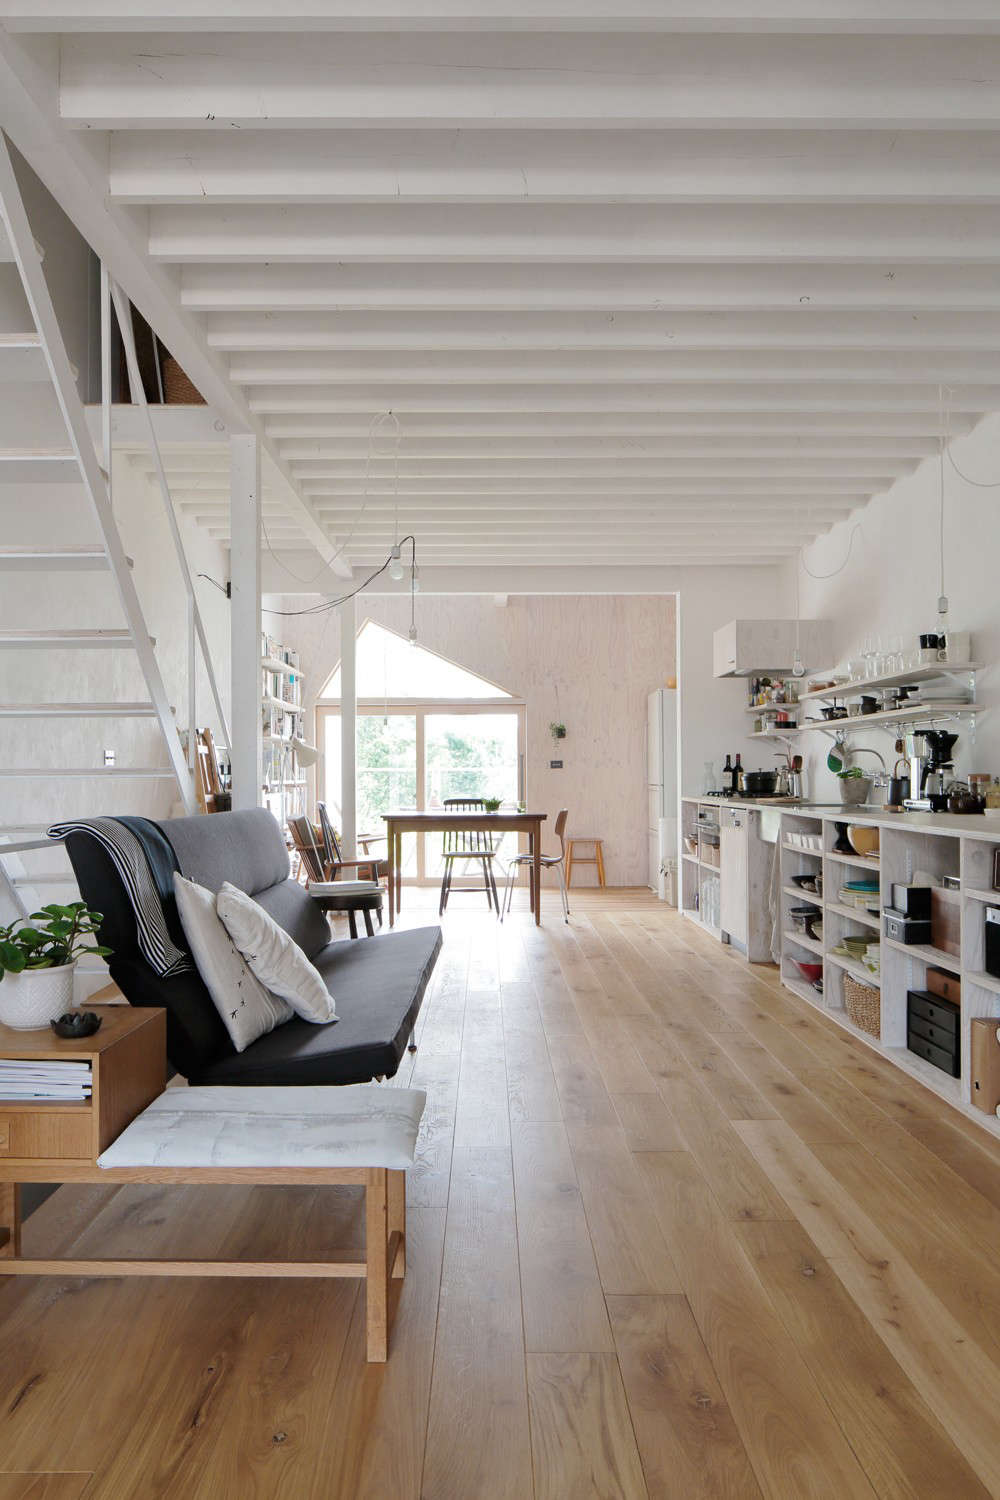 An open kitchen runs along the second floor anchored by living and dining balconies at either end.